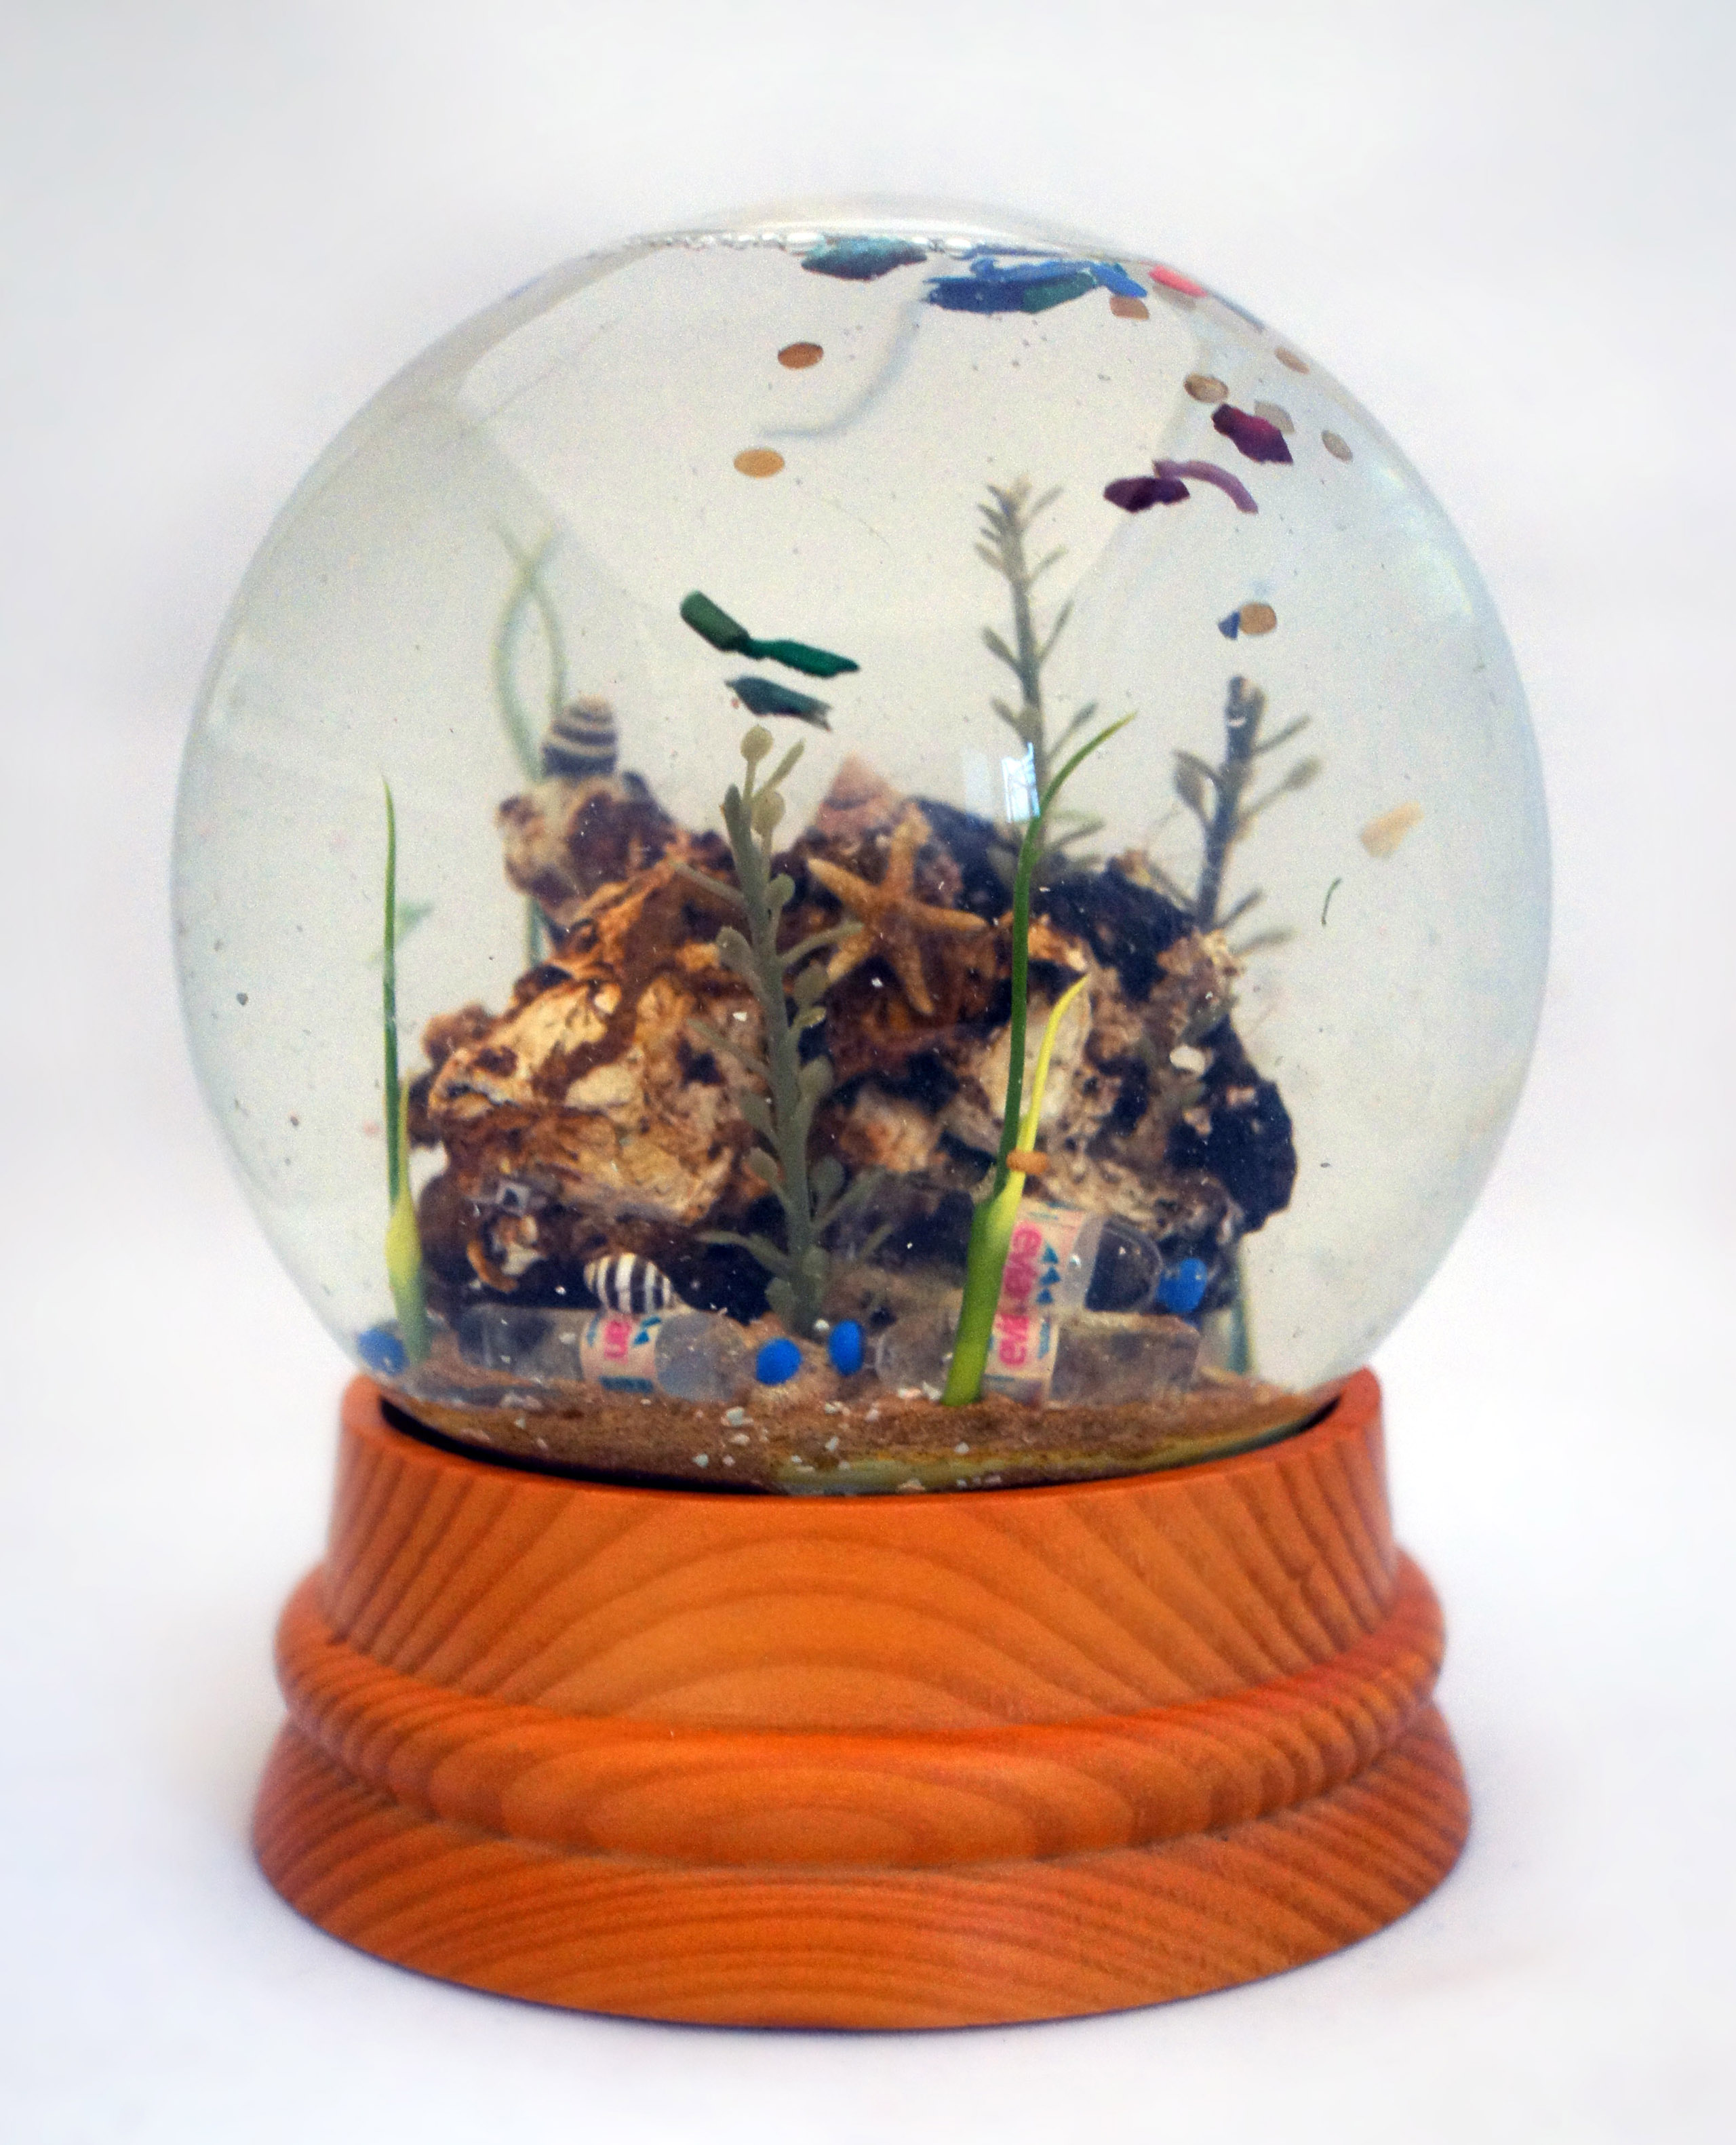 Max Liboion—Large Sea Globe, 2013-2014.